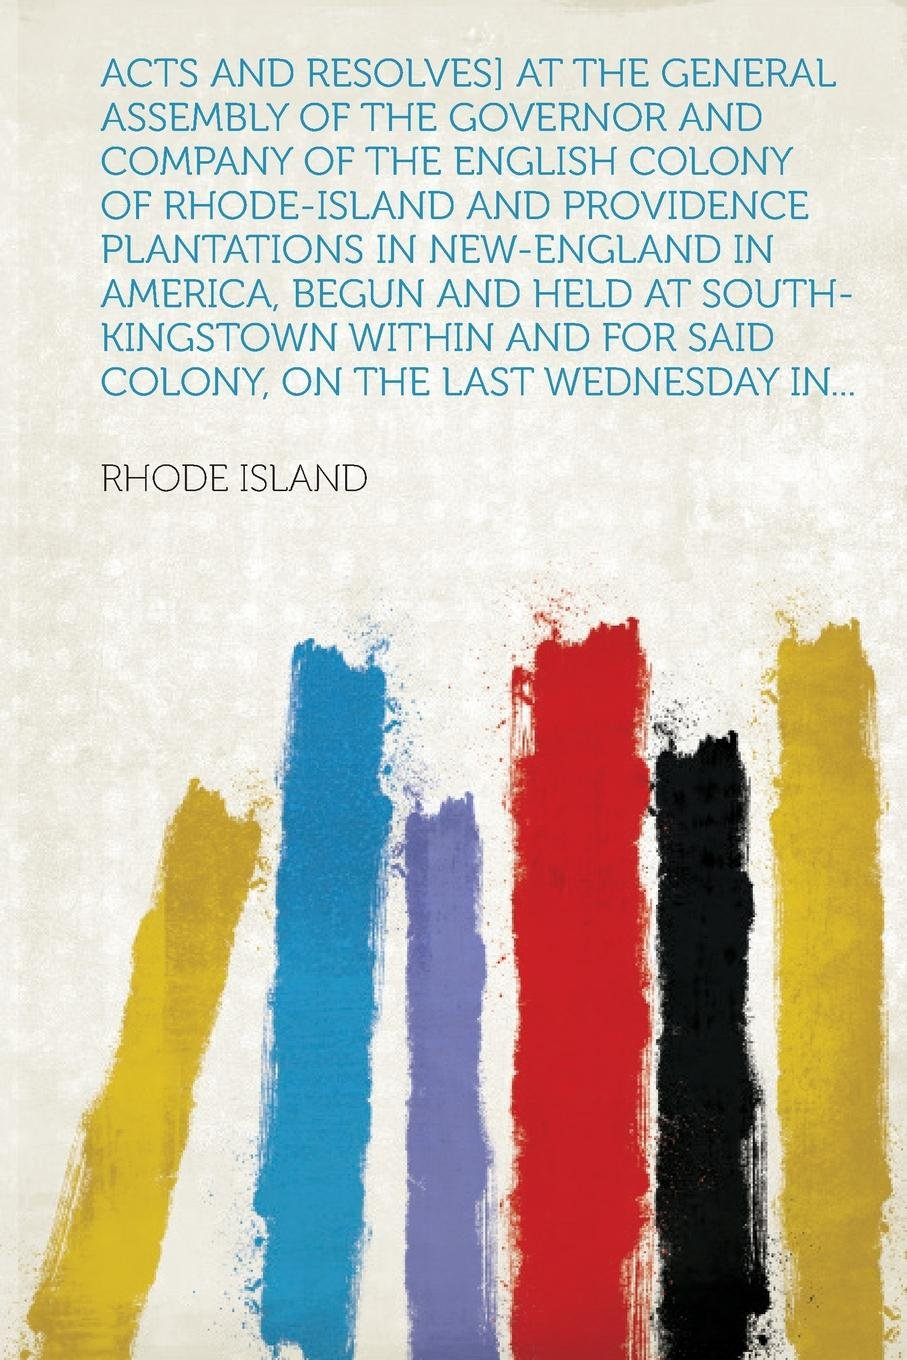 Read Online Acts and resolves] At the General Assembly of the governor and company of the English colony of Rhode-Island and Providence Plantations in New-England ... for said colony, on the last Wednesday in... pdf epub